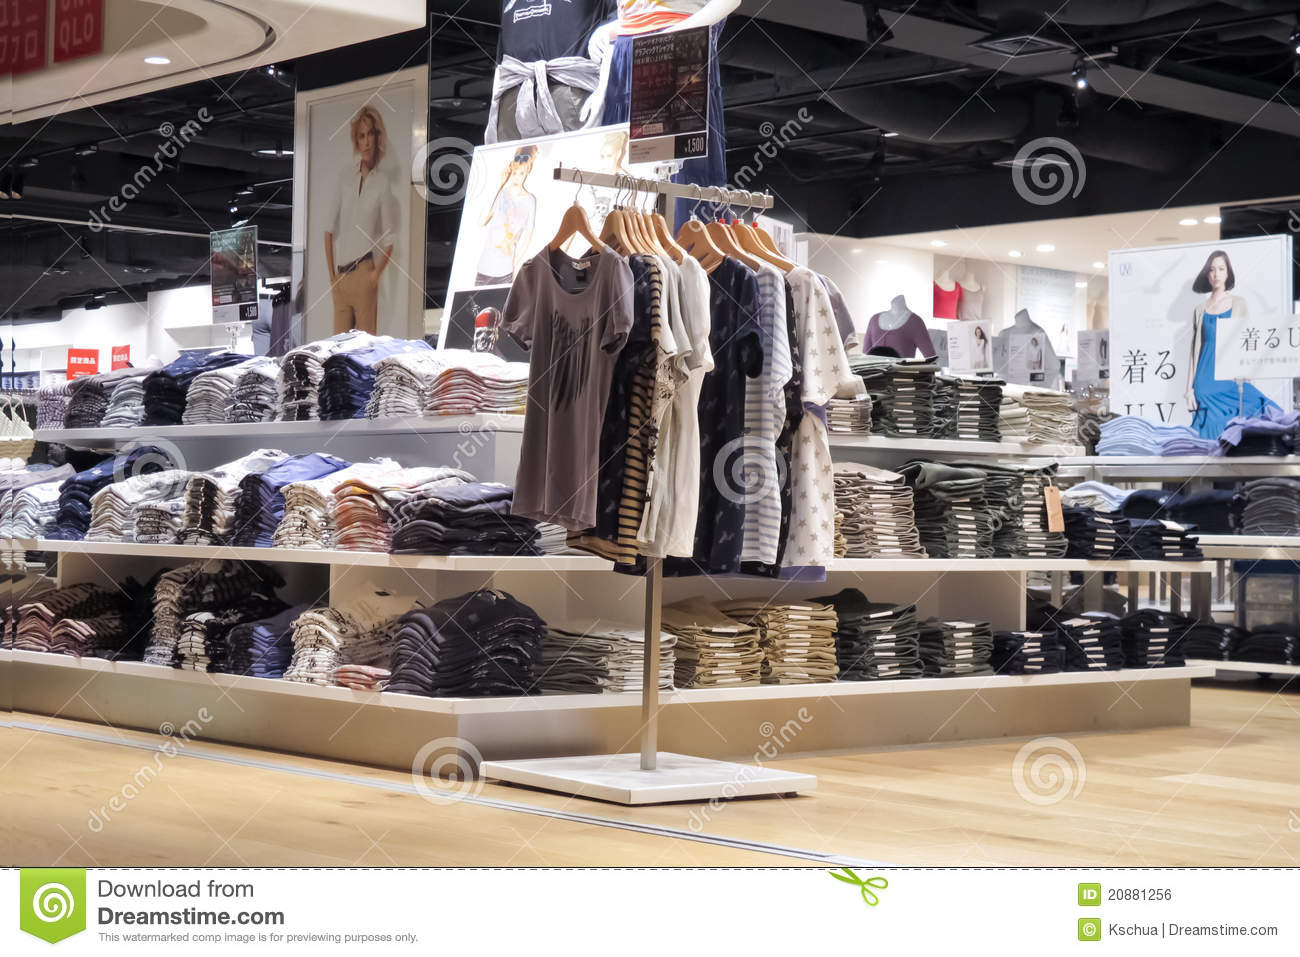 Mommy and me clothing store Clothing stores